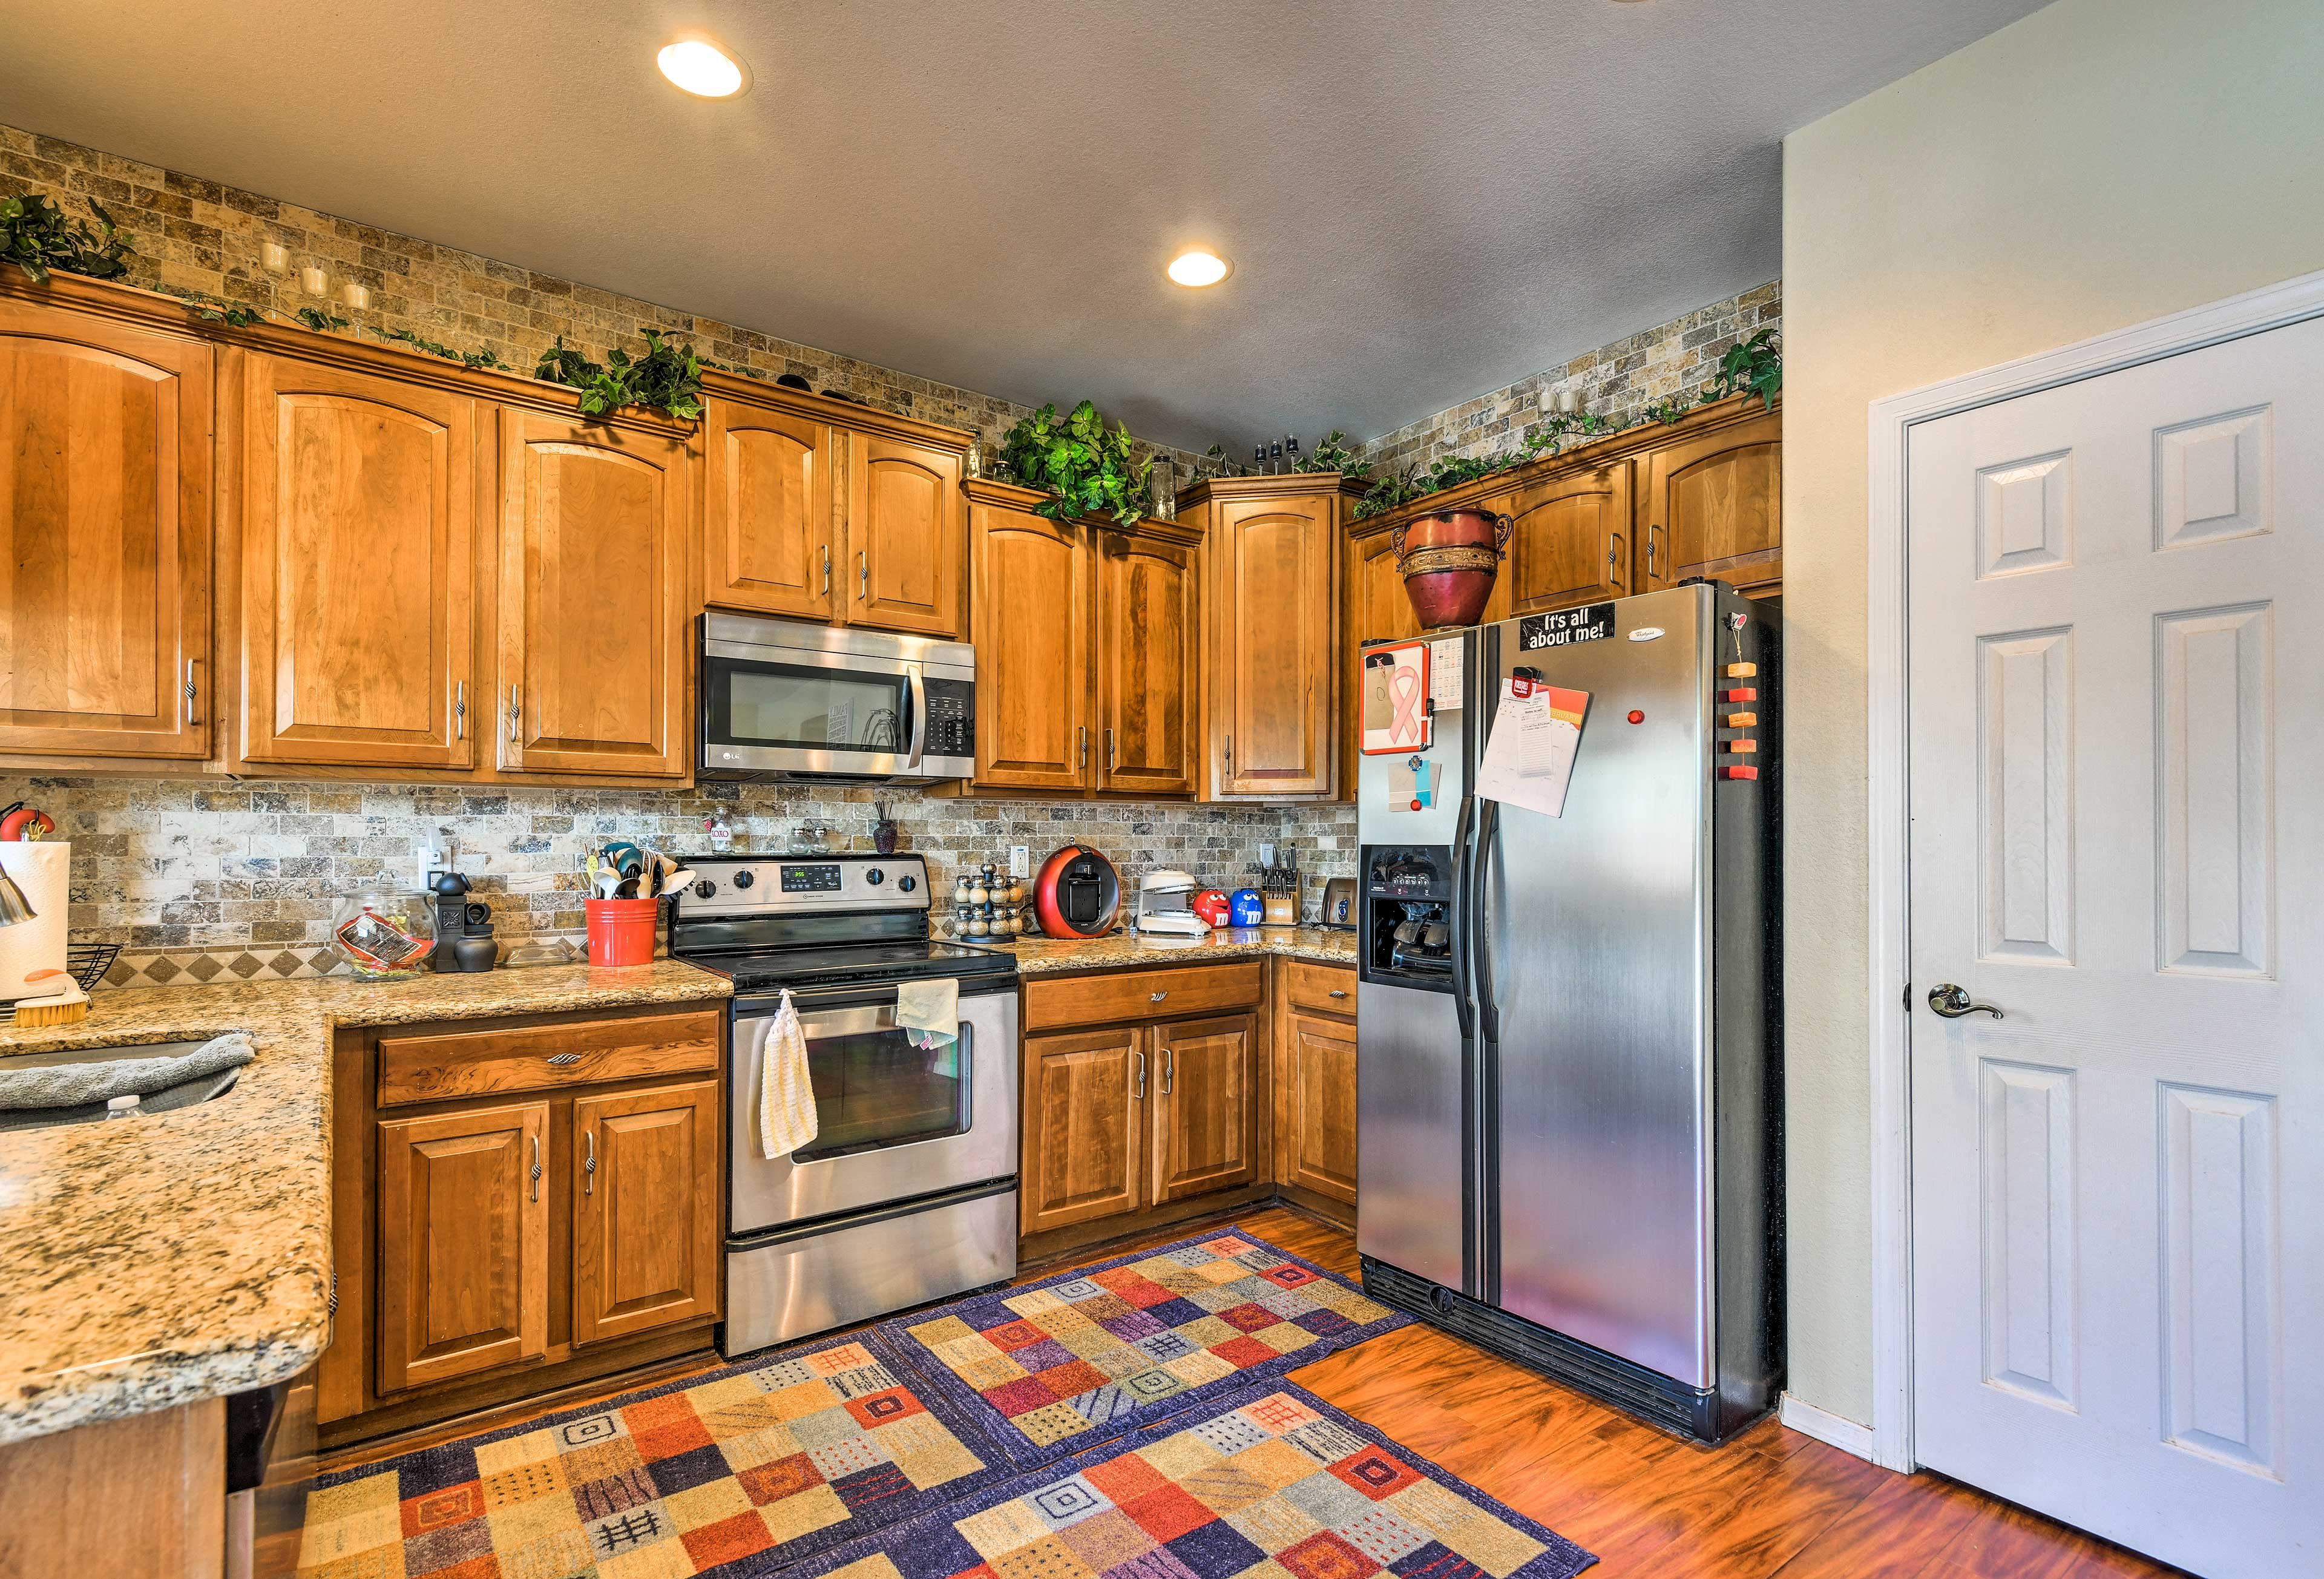 Whip up a mouthwatering meal in the fully equipped kitchen!